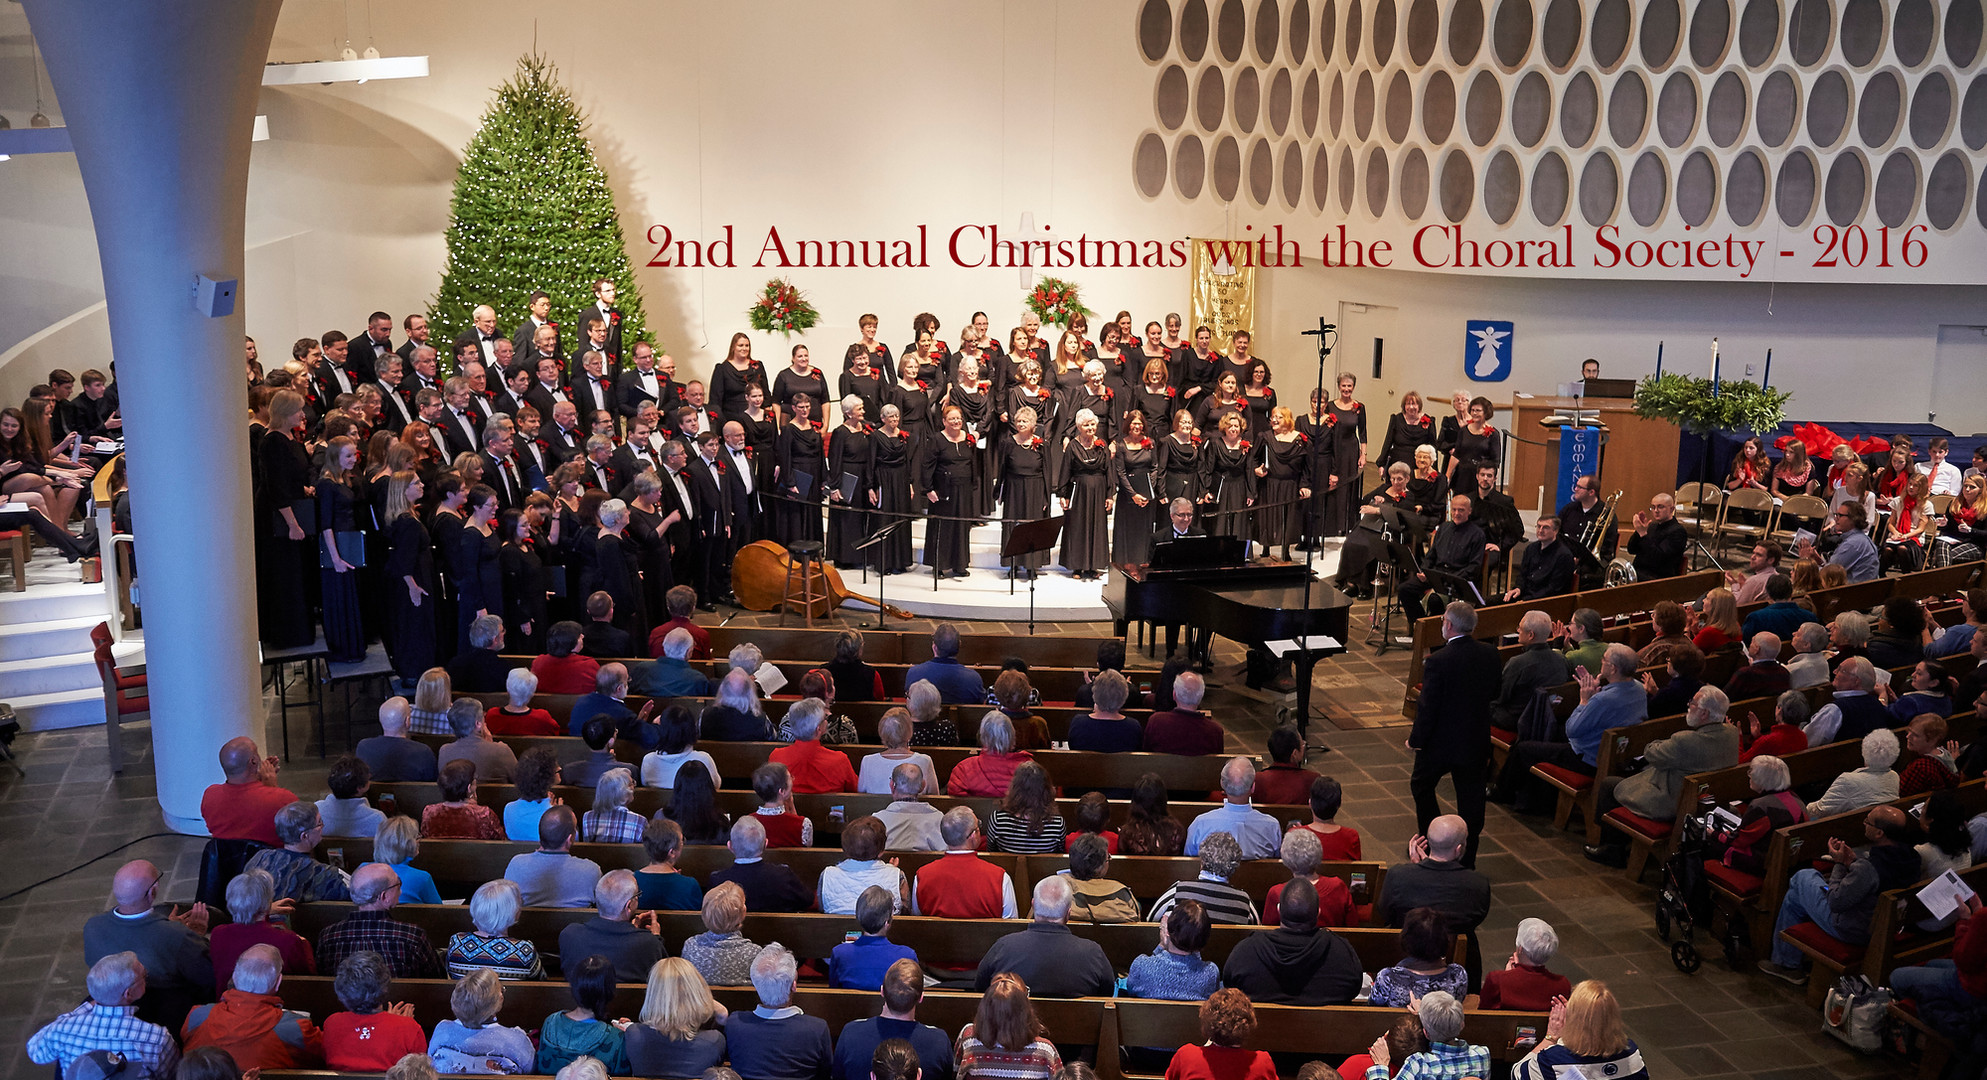 2nd Annual Christmas with the Choral Society